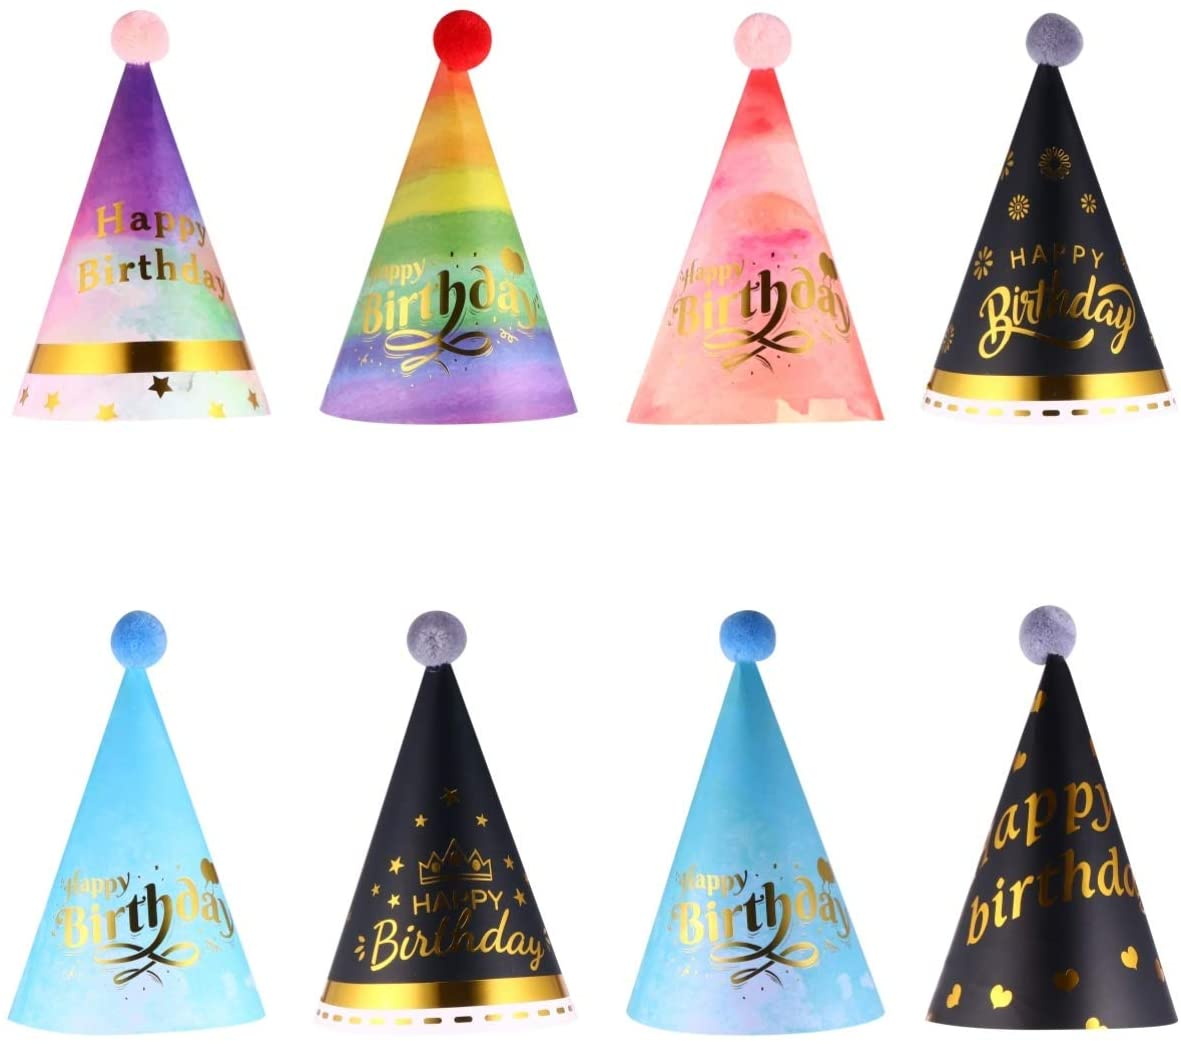 KESYOO 8pcs Birthday Party Cone Hats Paper Birthday Cap Hat Headband Set for Kids Birthday Party Favors Baby Shower Party Accessories